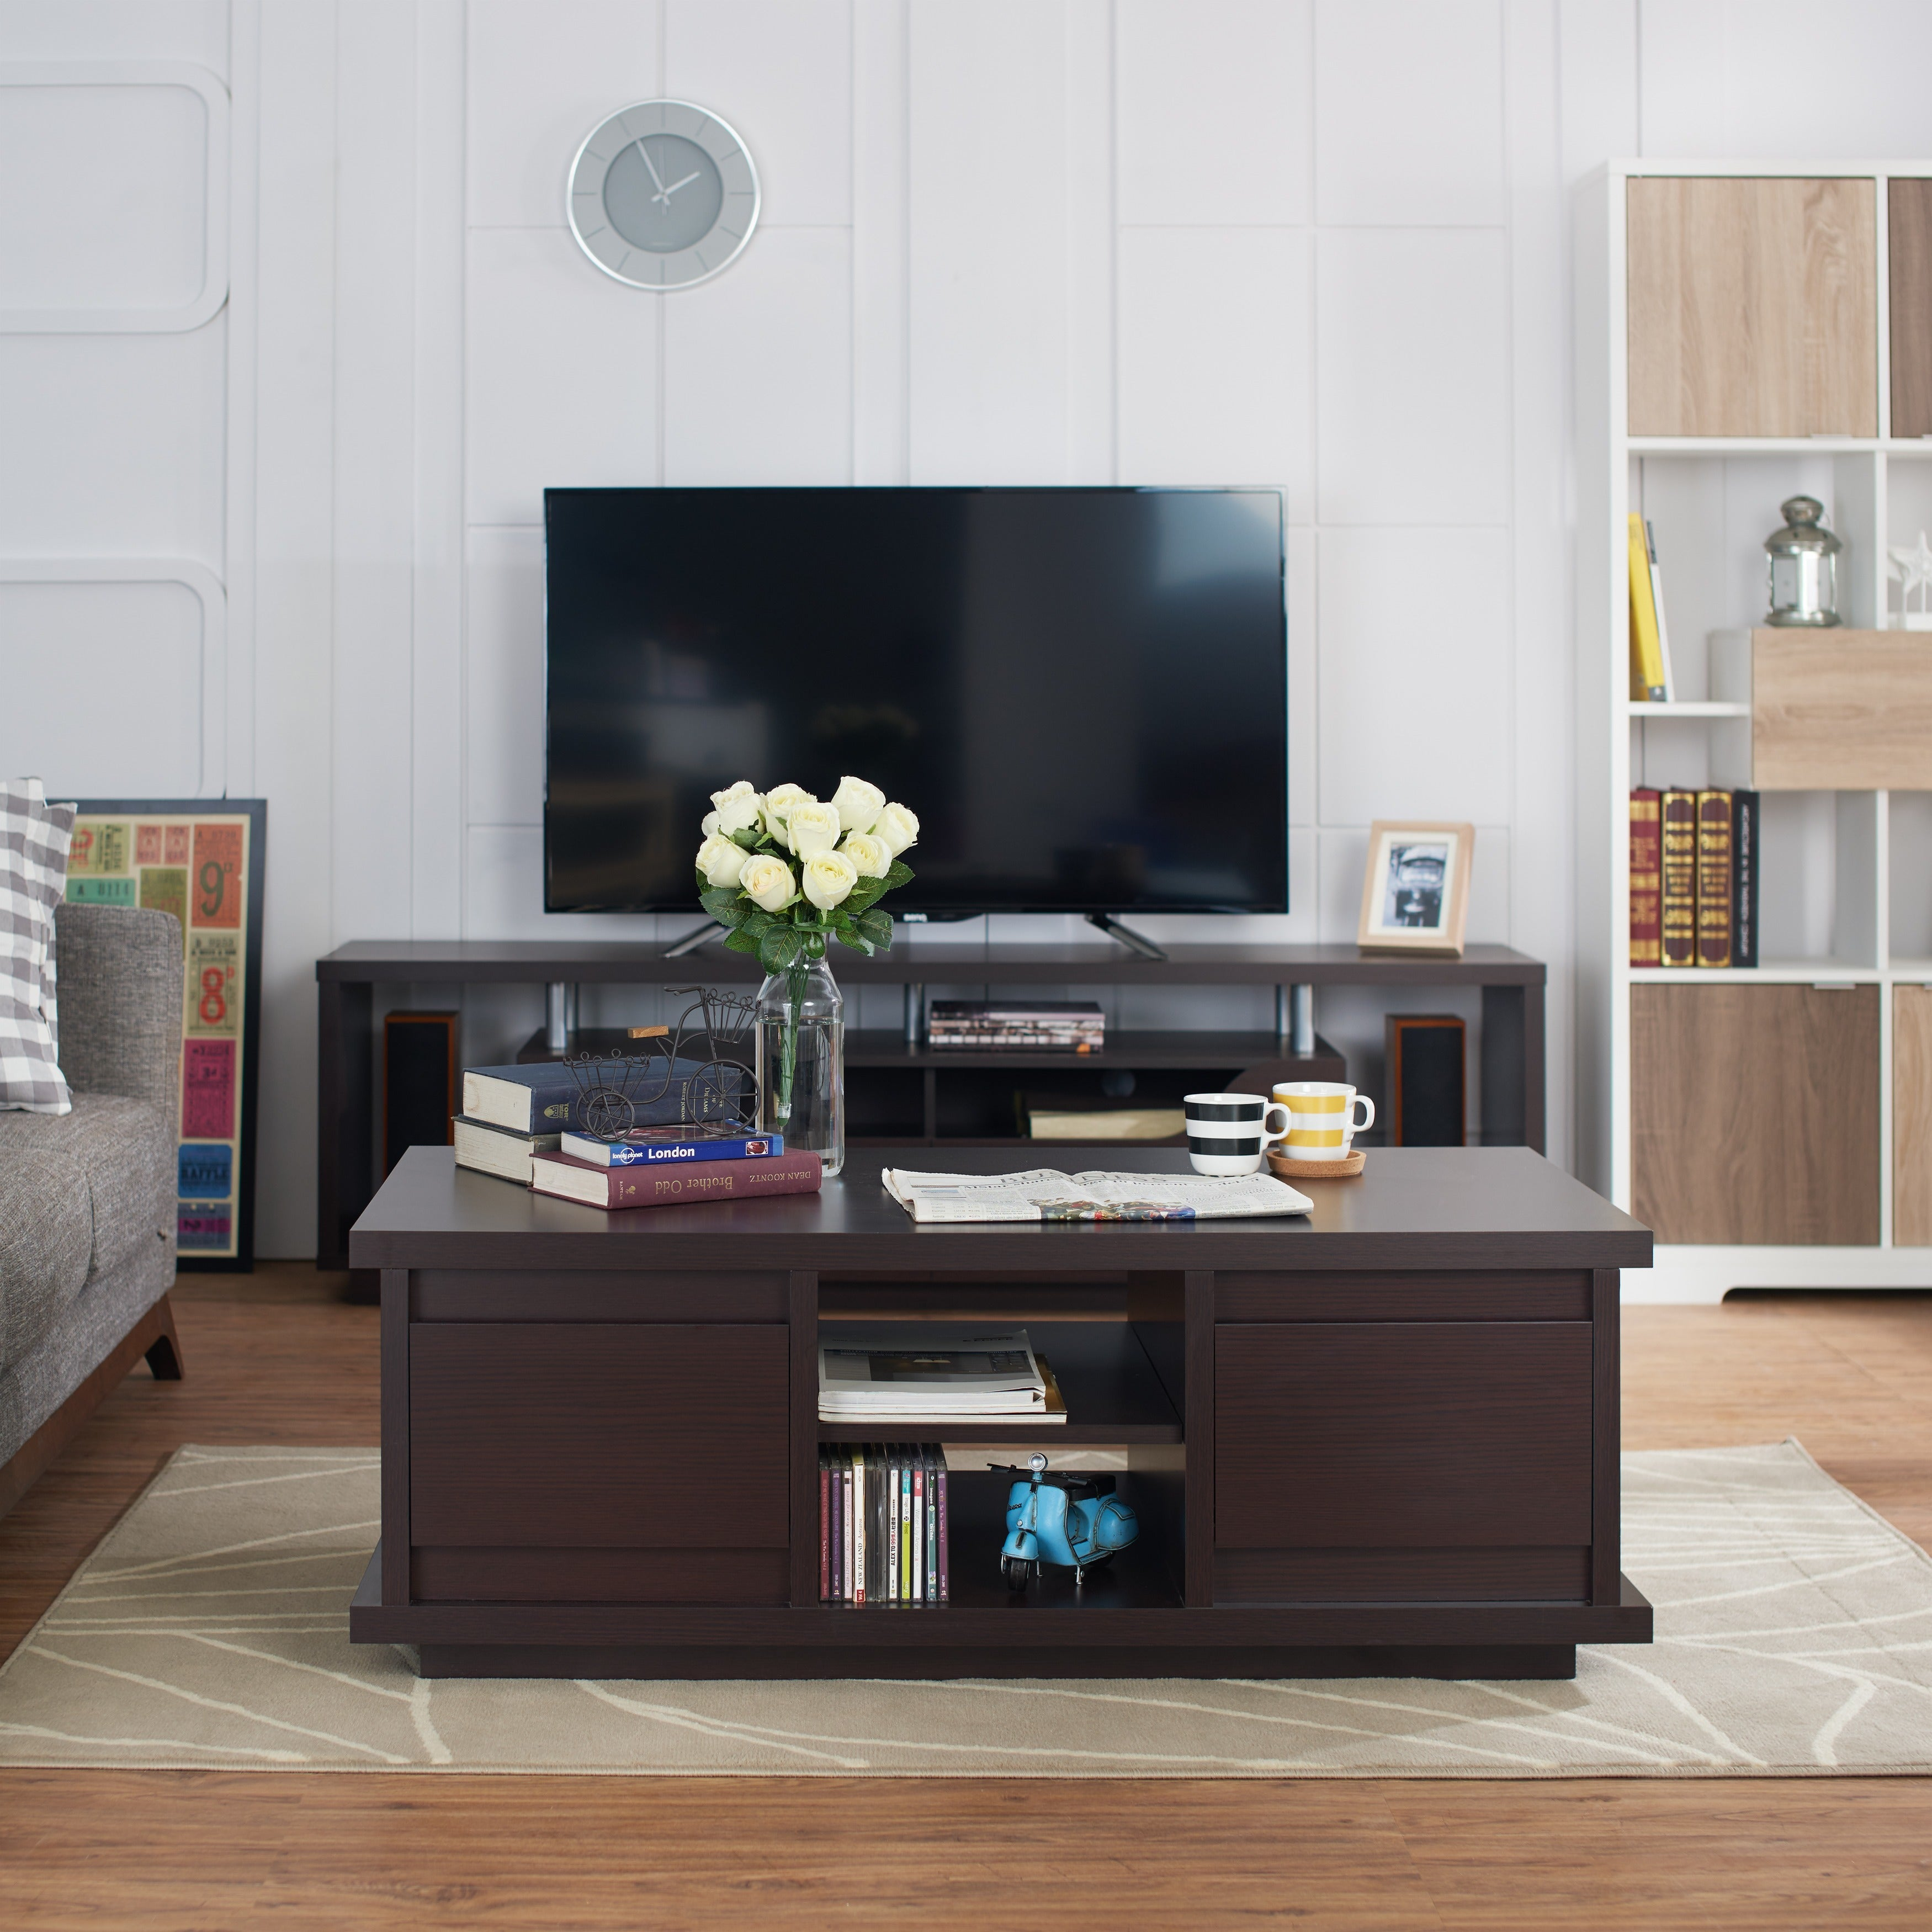 Furniture Of America Irvine Walnut Coffee Table Free Shipping Today With Koontz  Furniture.